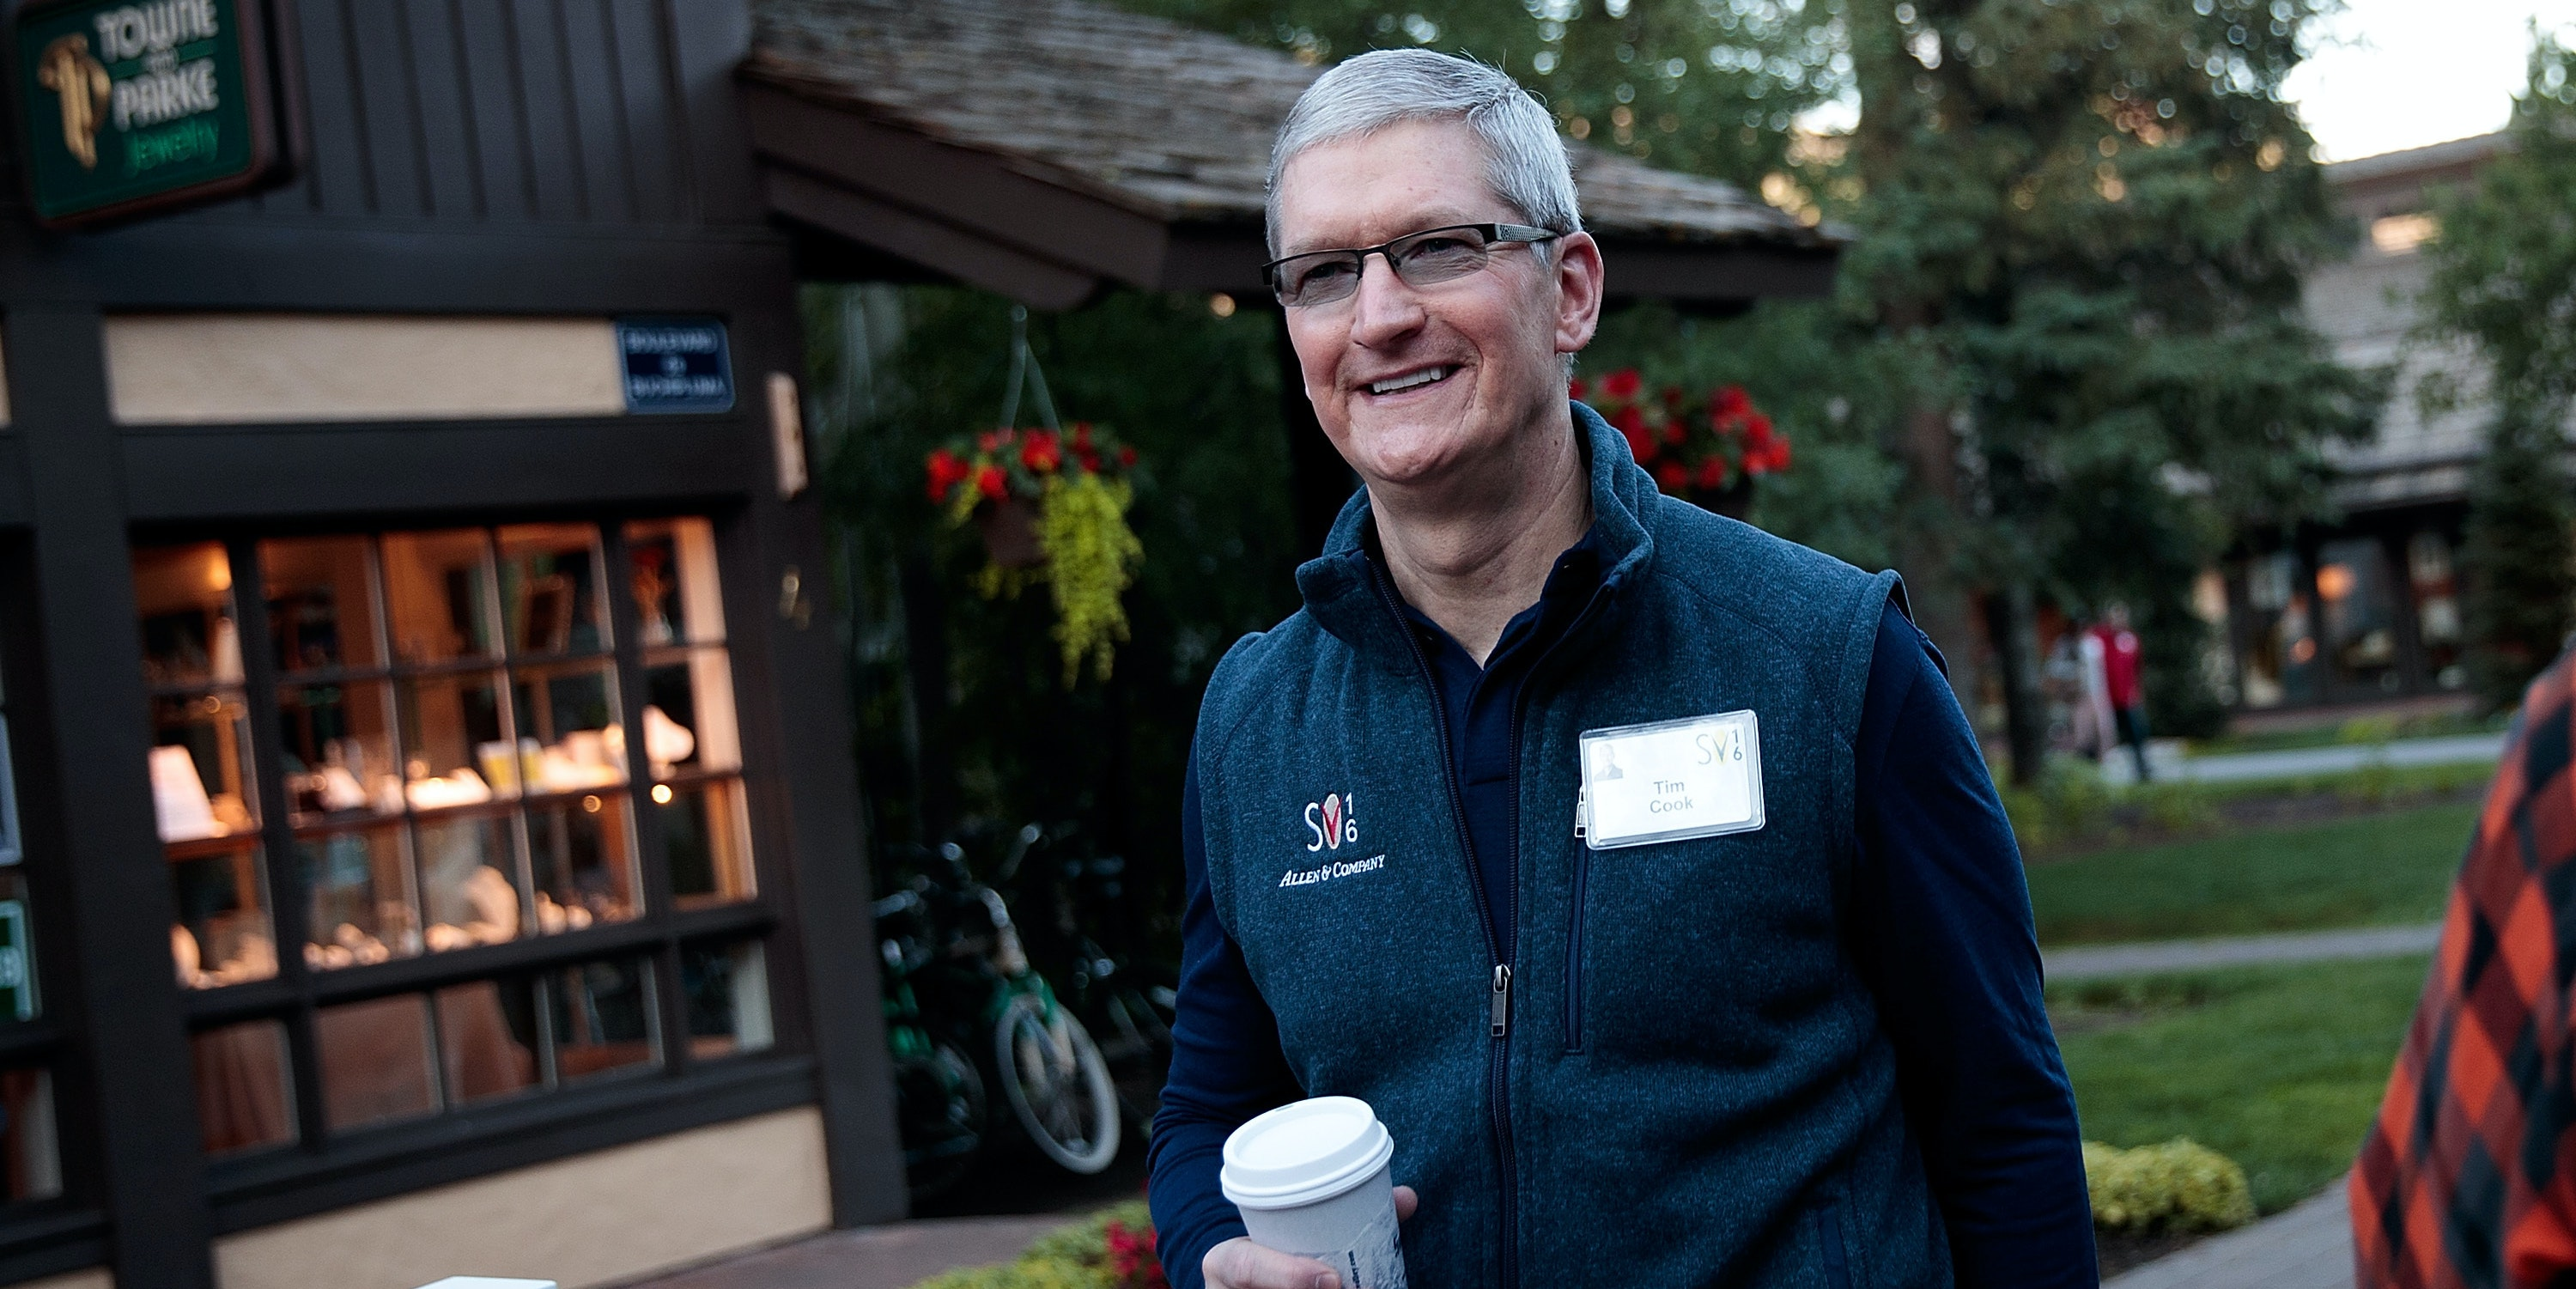 Tim Cook, chief executive officer of Apple Inc., attends the annual Allen & Company Sun Valley Conference, July 6, 2016 in Sun Valley, Idaho. Every July, some of the world's most wealthy and powerful businesspeople from the media, finance, technology and political spheres converge at the Sun Valley Resort for the exclusive weeklong conference.